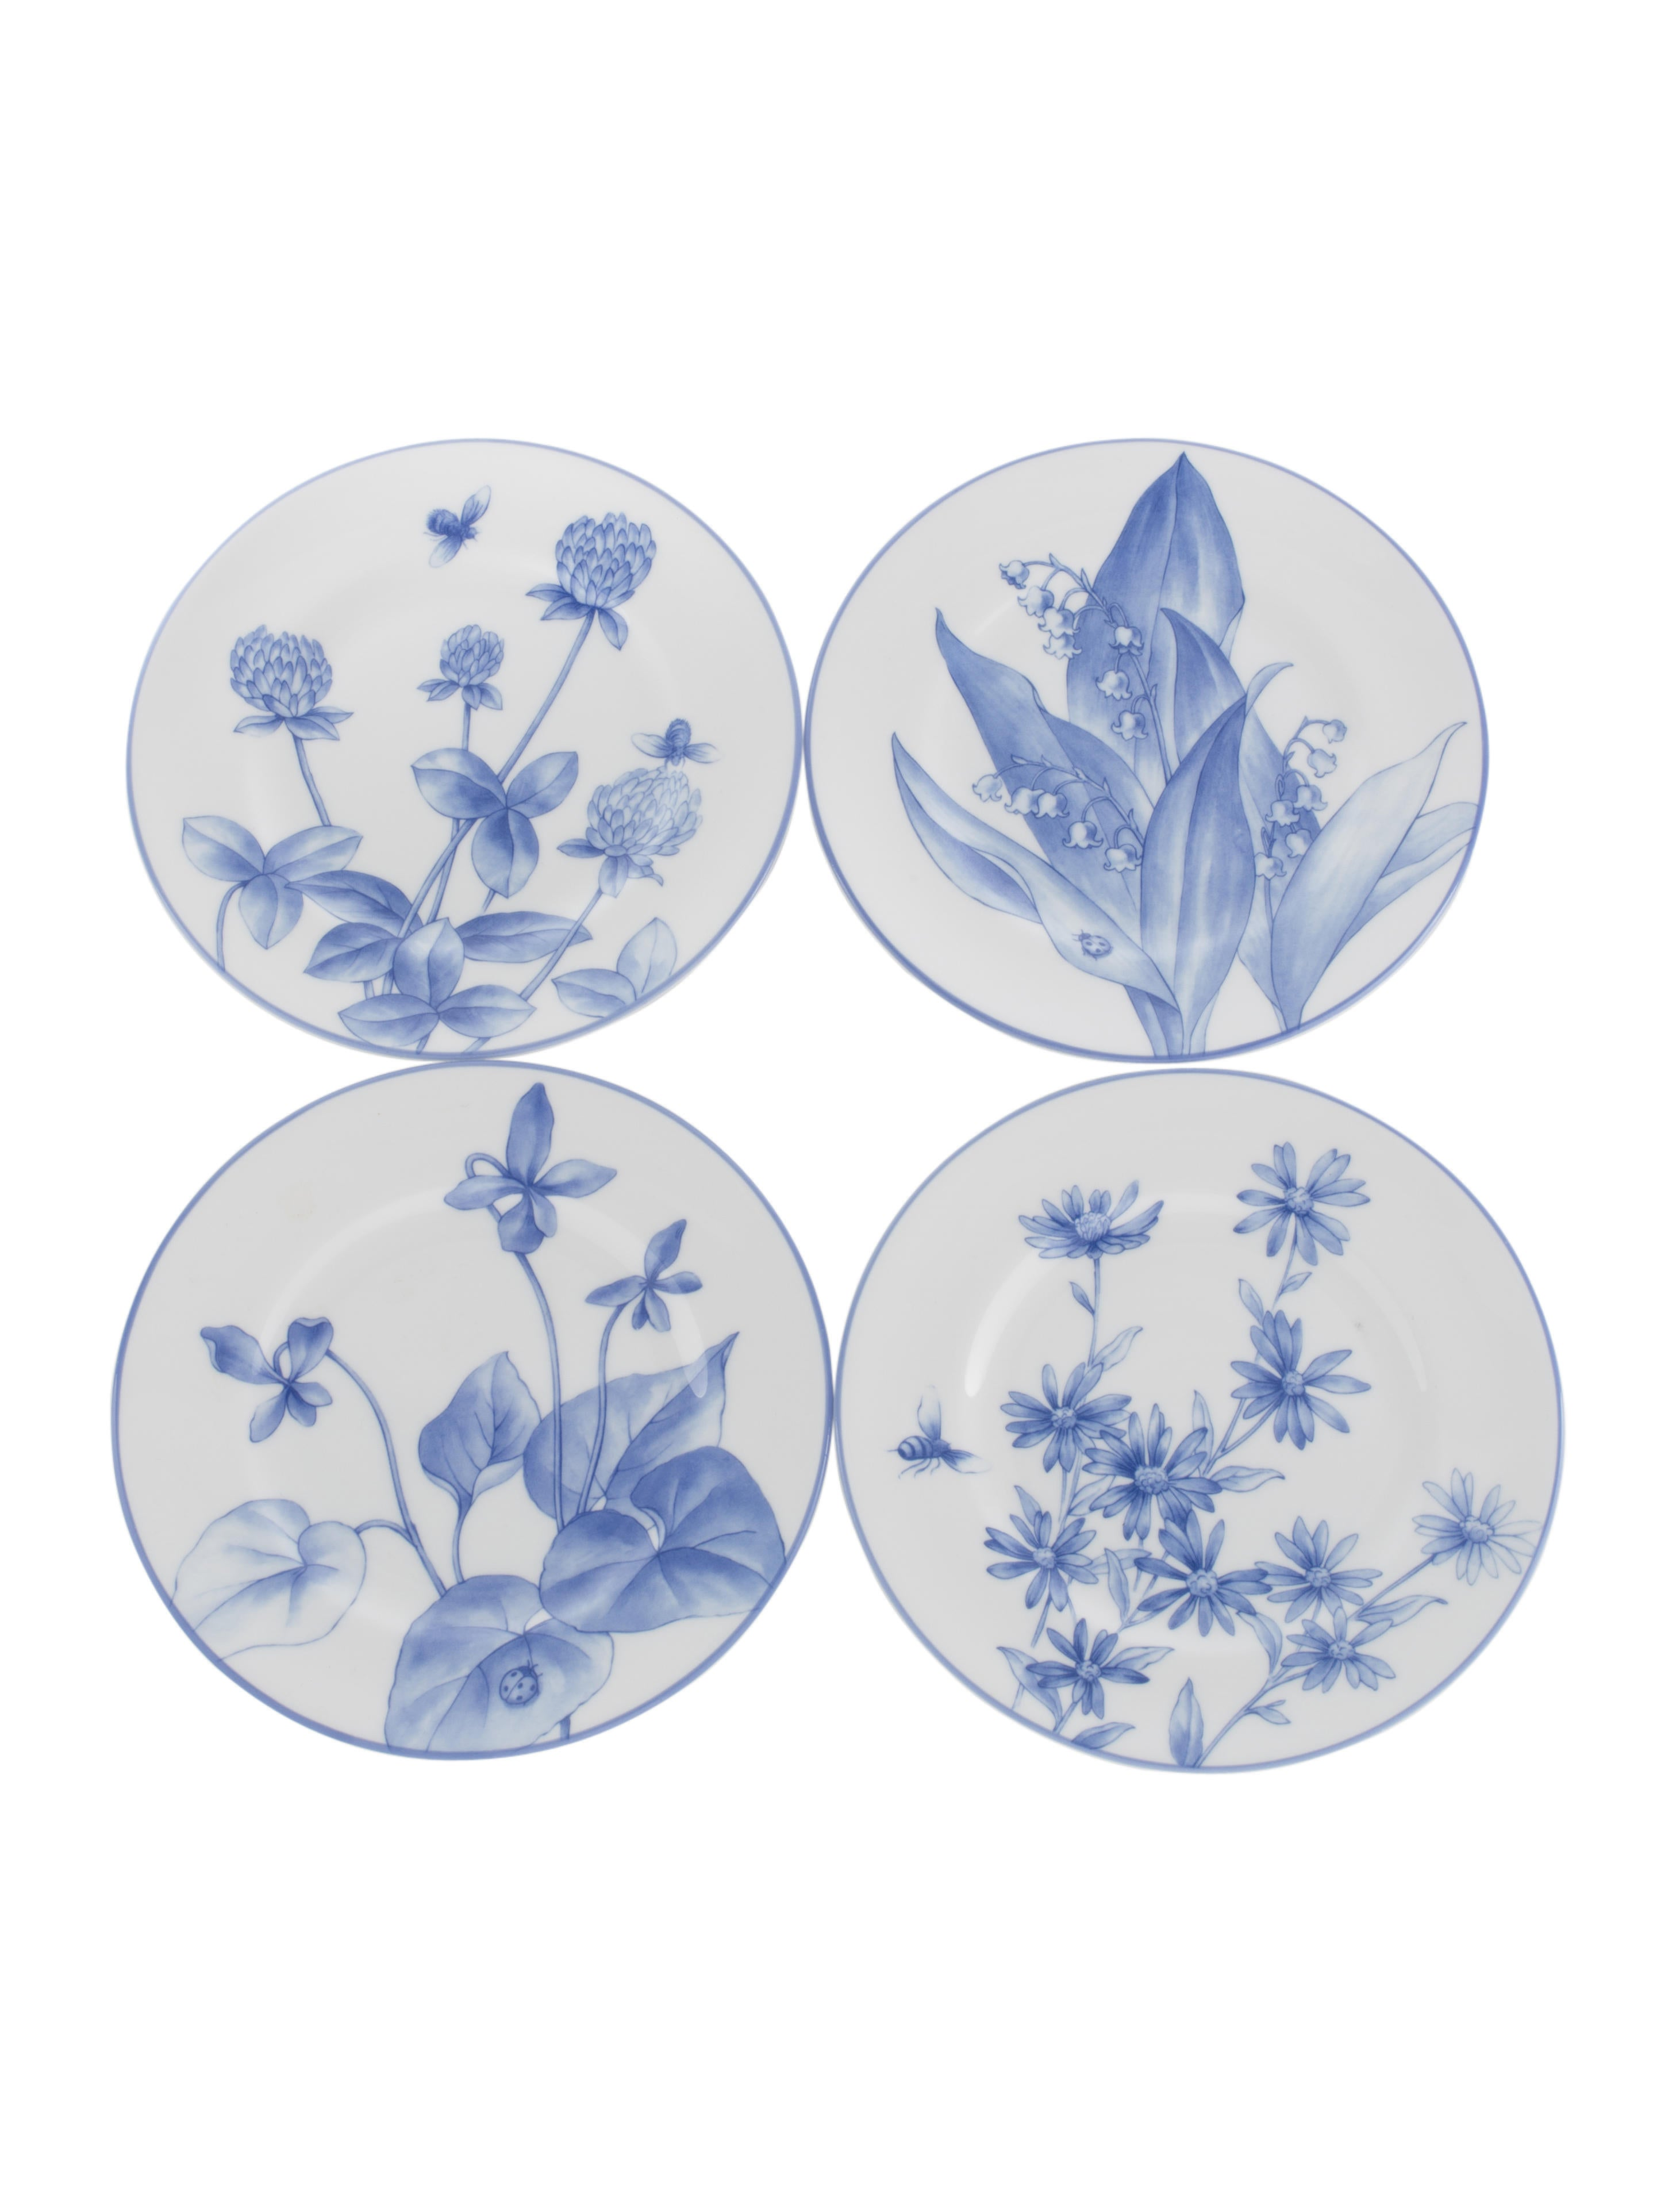 Tiffany & Co. 8-Piece Tiffany Nature Plate Set - Tabletop And ...